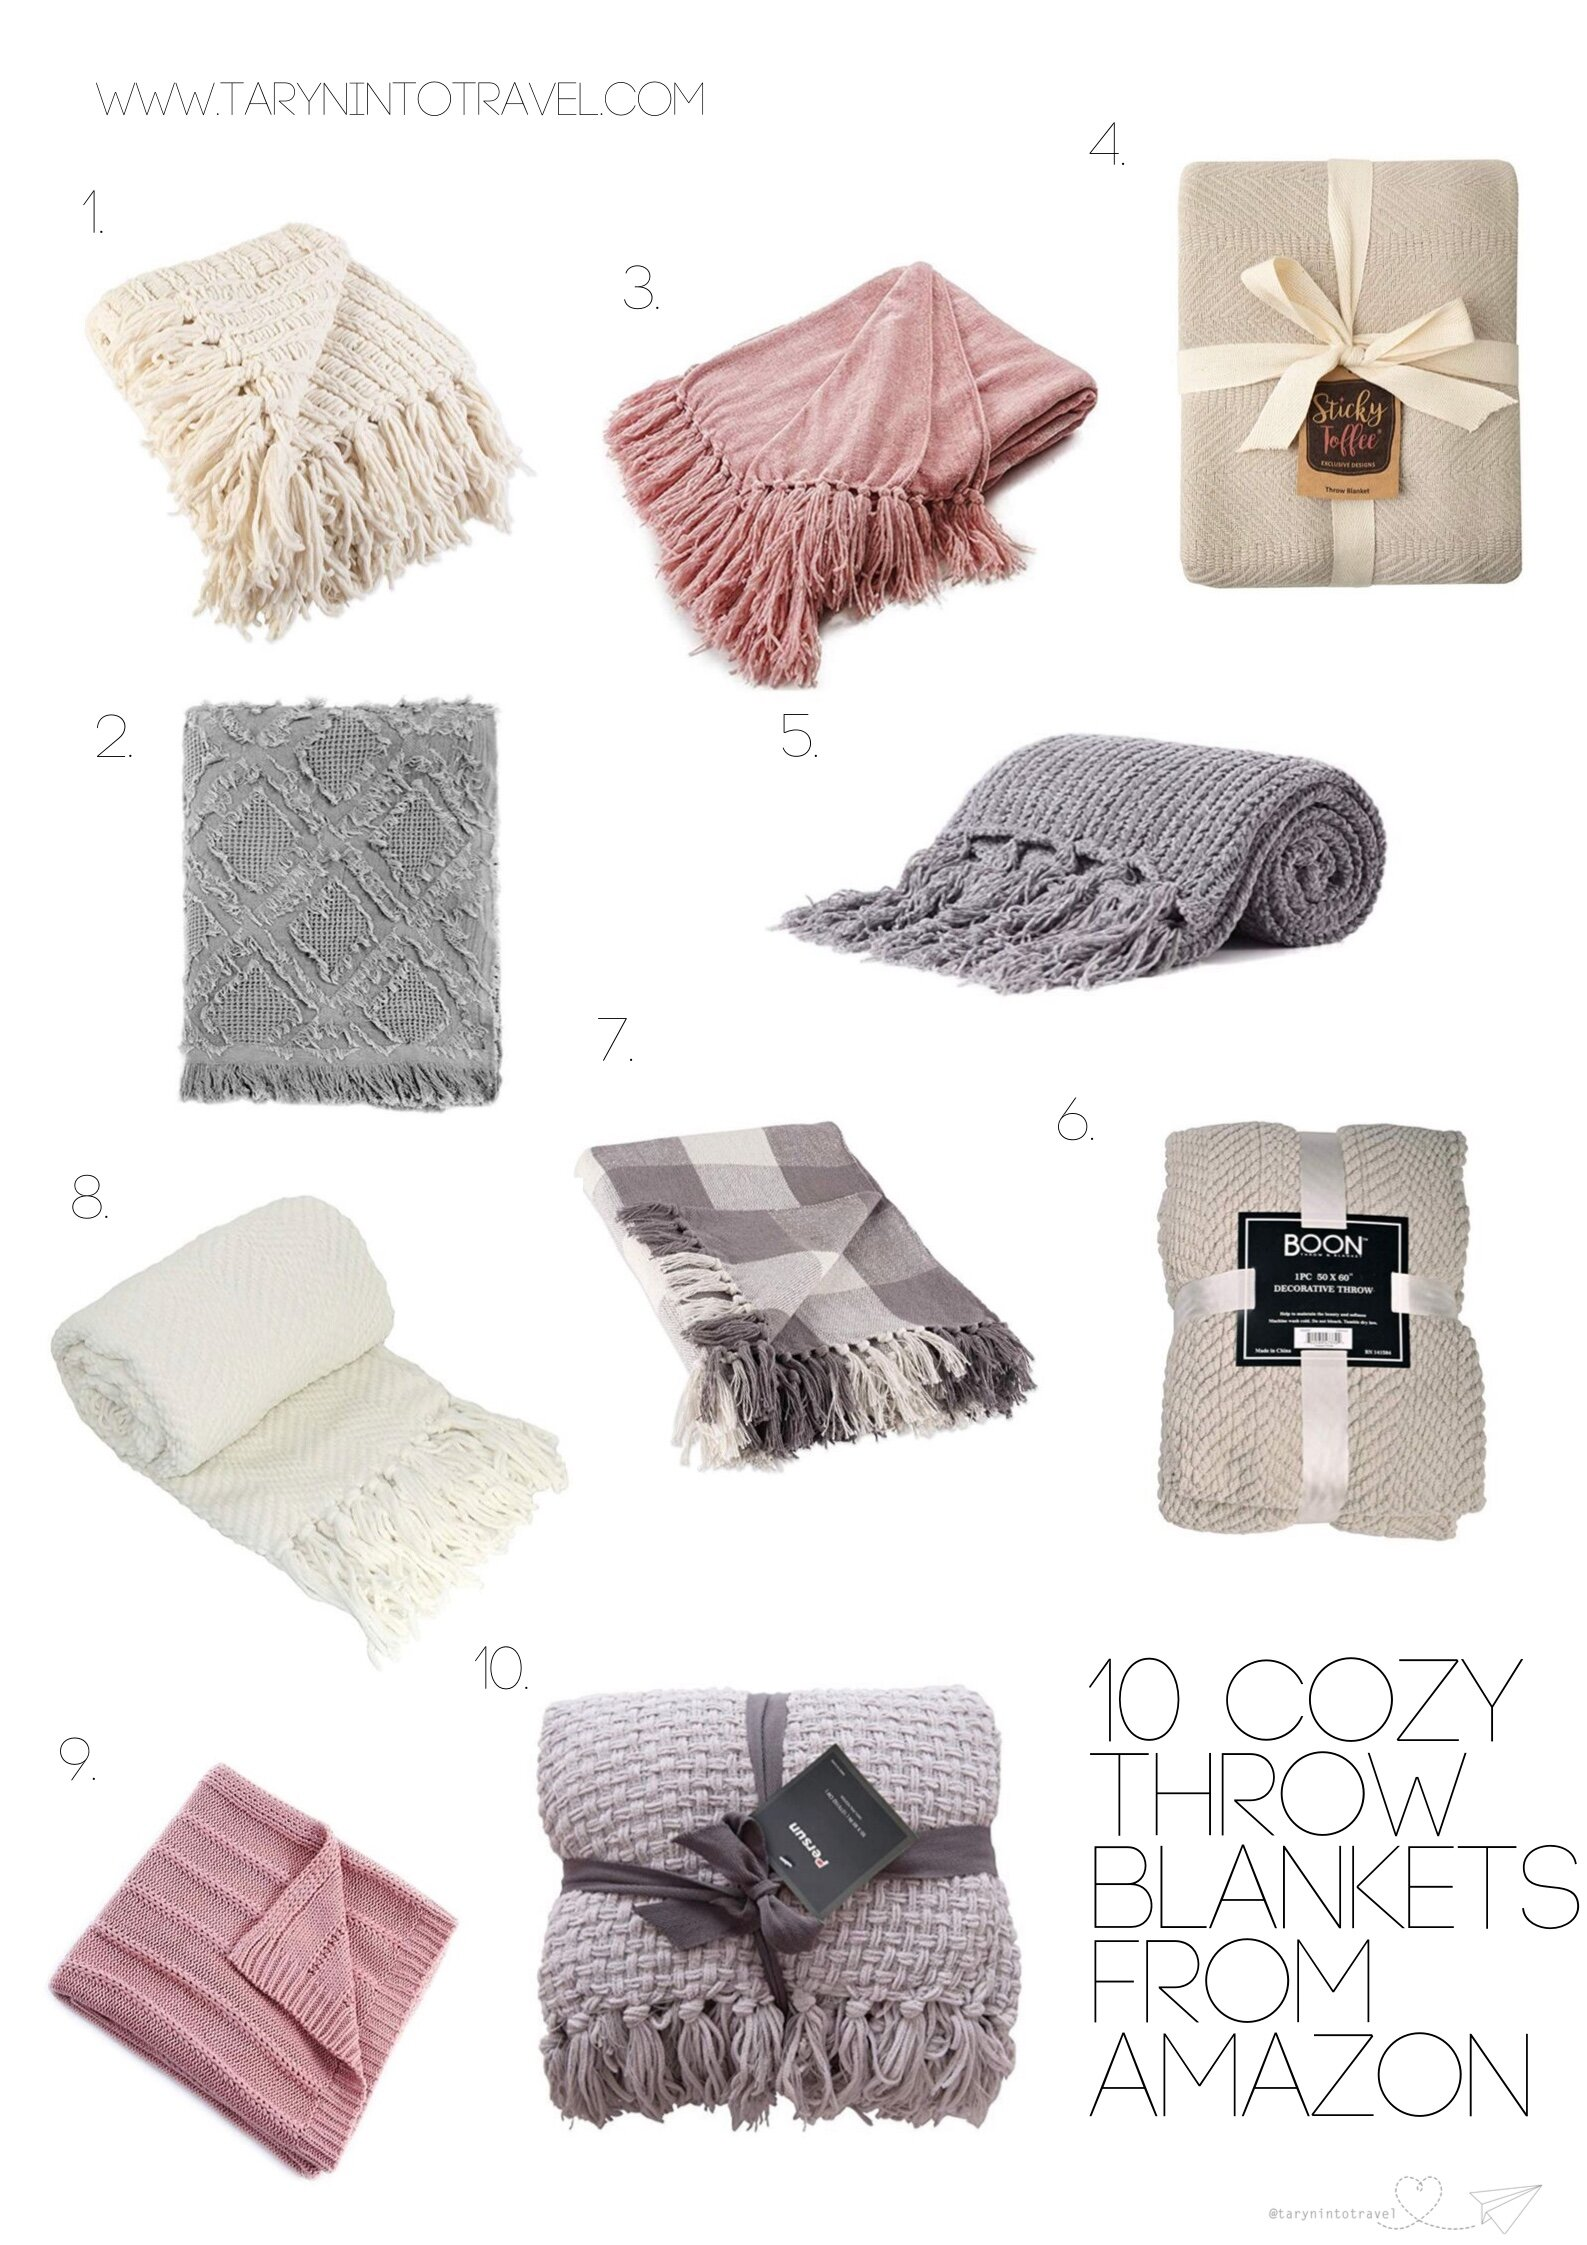 10 Cozy Throw Blankets from Amazon | www.tarynintotravel.com | #amazonfinds #cozythrowblankets #blankets